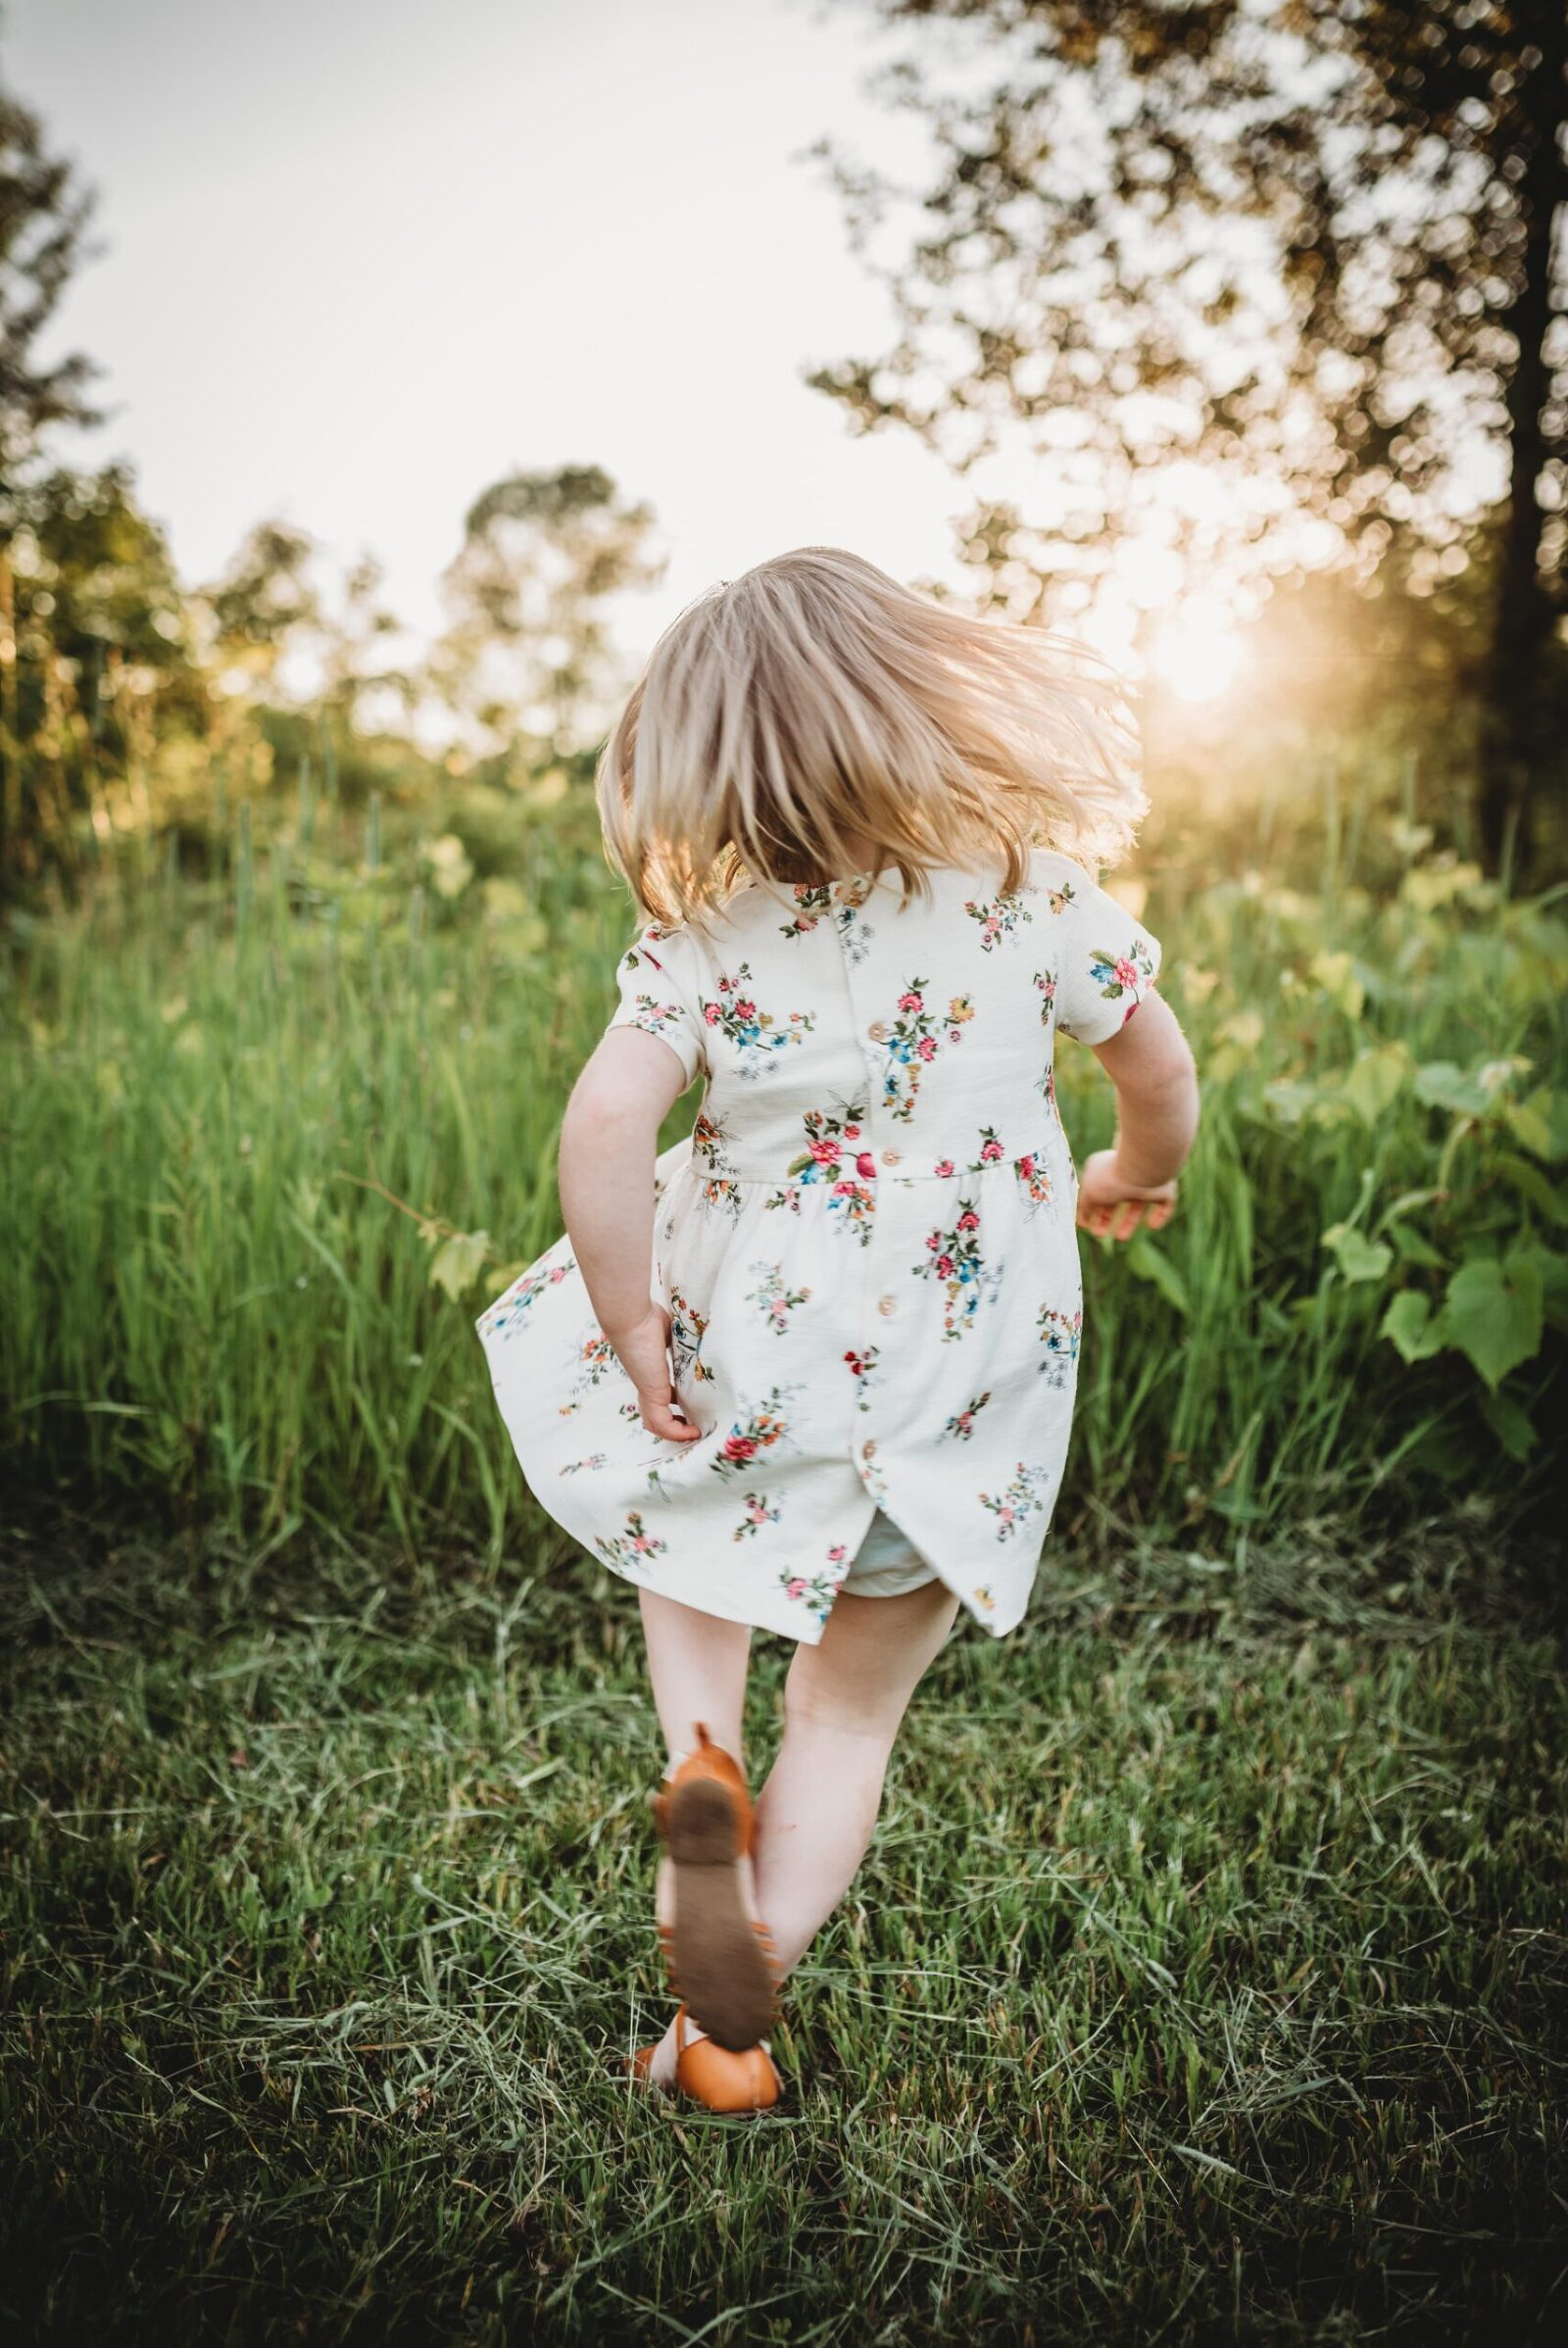 3 year old girl twirling with glowing sun in background